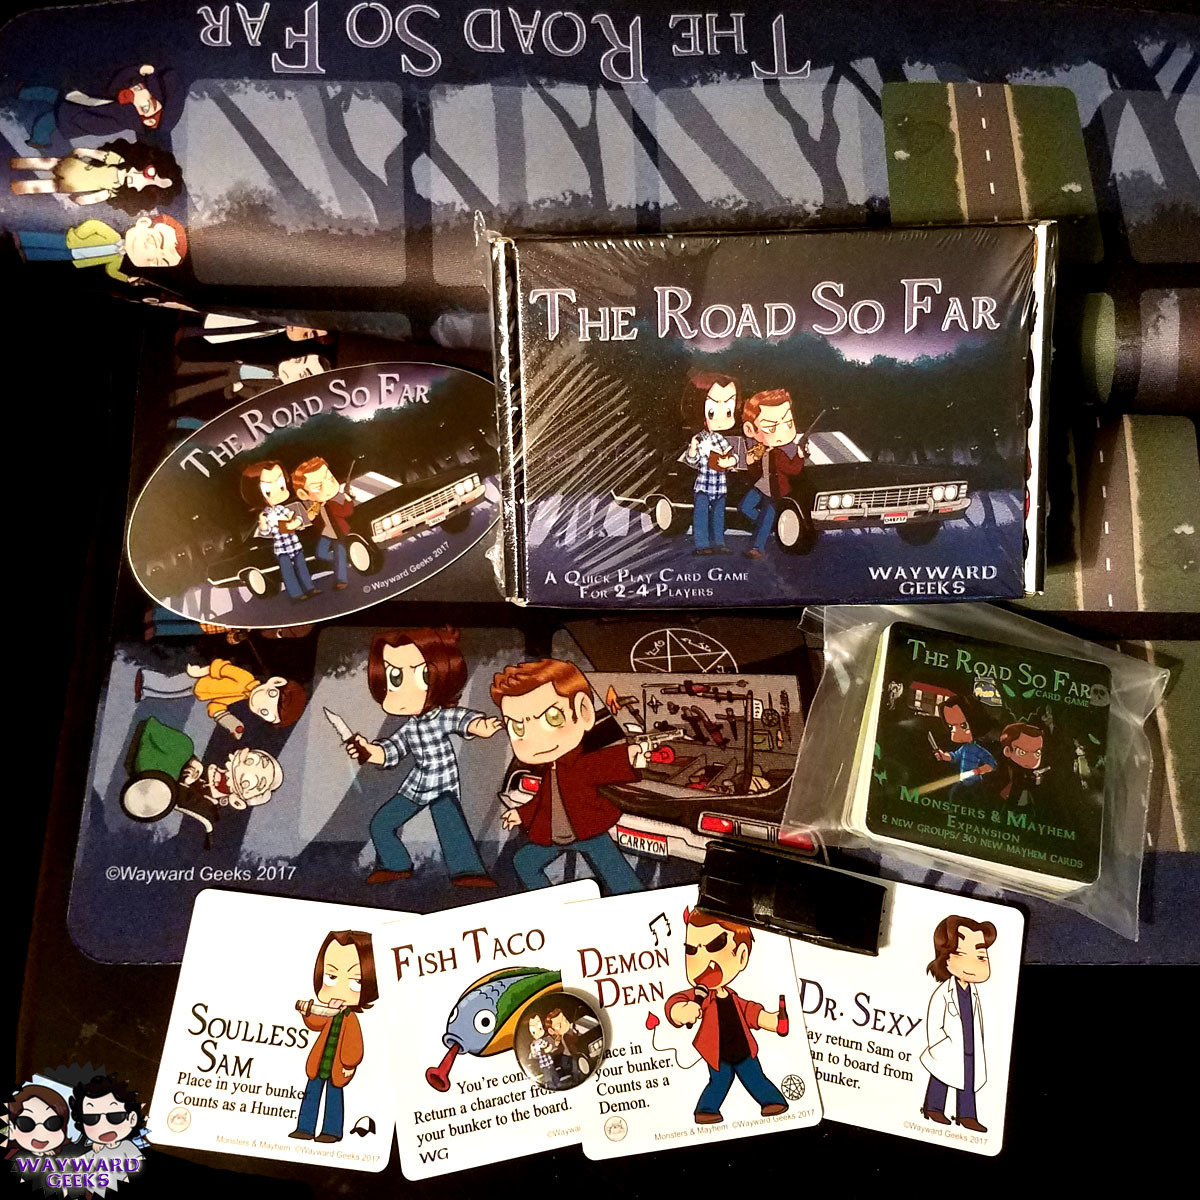 The Road So Far Card Game - Basic Bundle with Expansion - LTD TIME FREE PROMO CARD SET